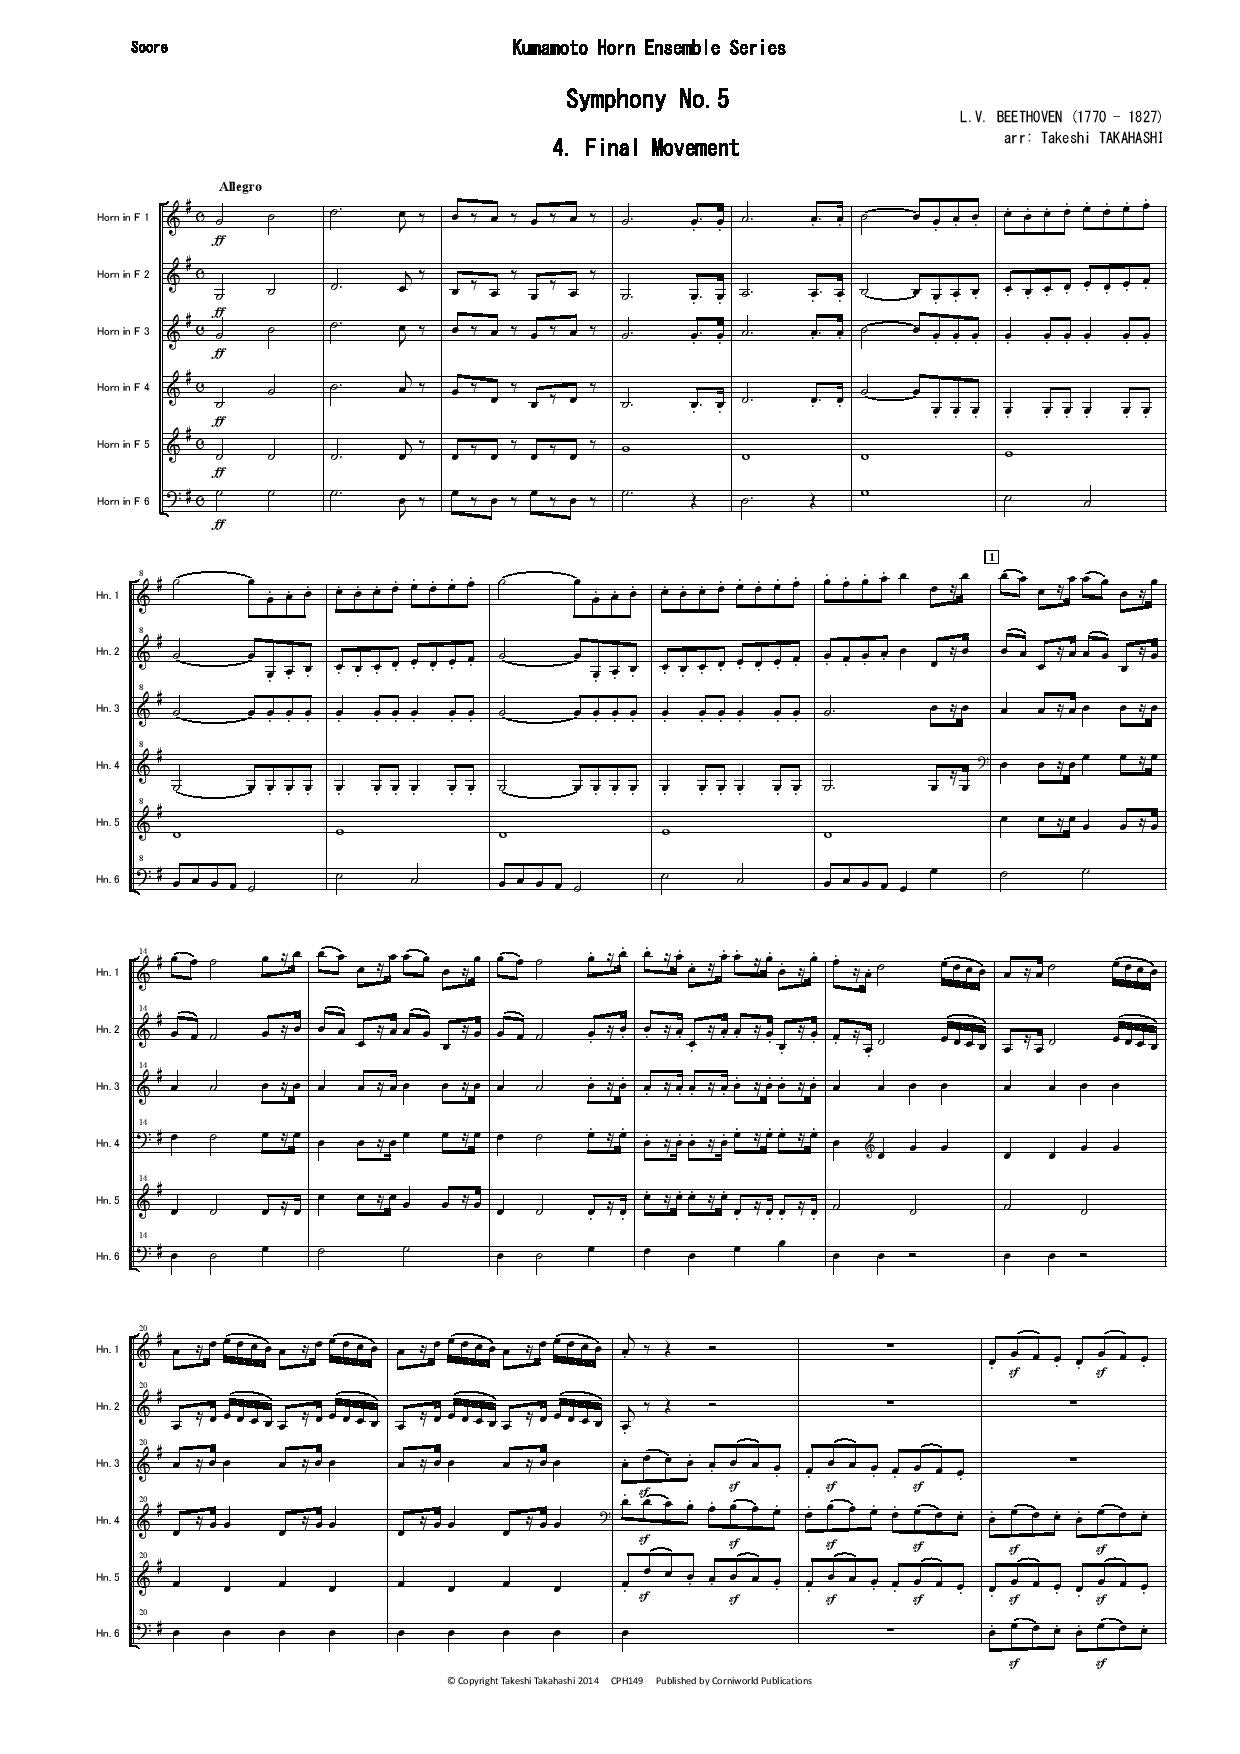 Final Mvt from Symphony No.5 (Beethoven) CPH149